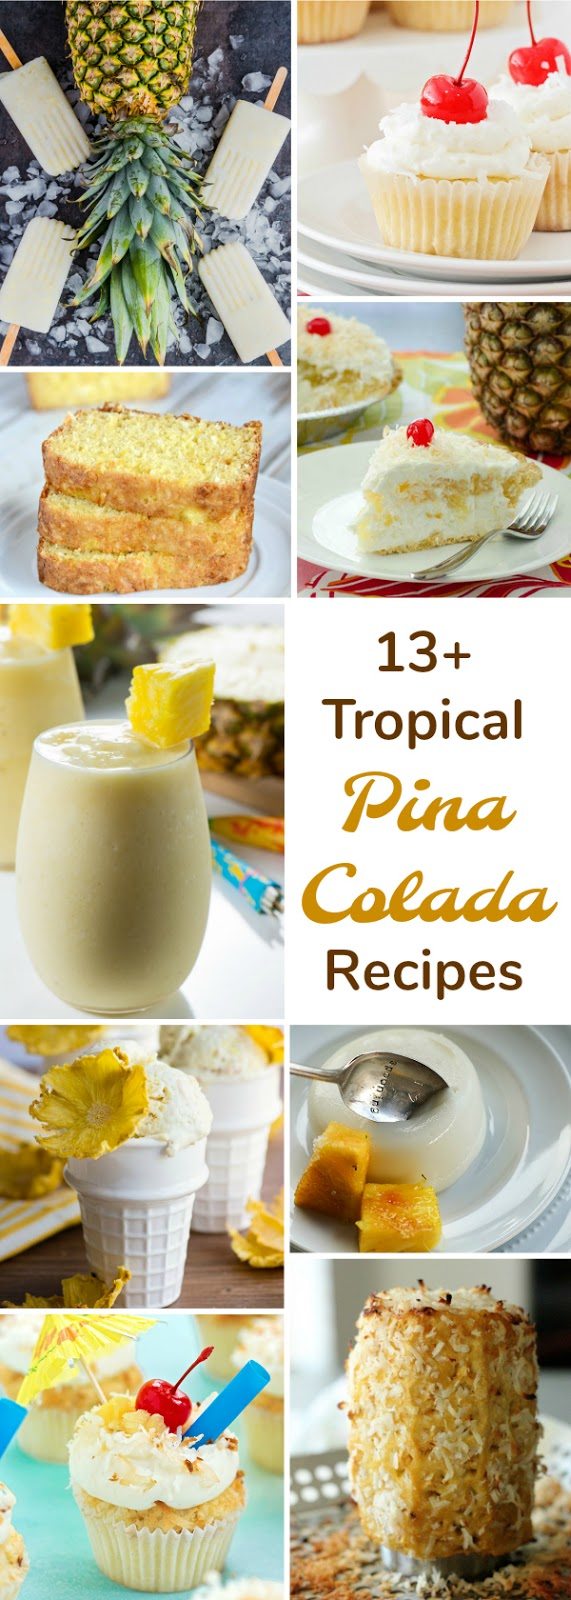 13 amazing piña colada recipes from your favorite food bloggers!